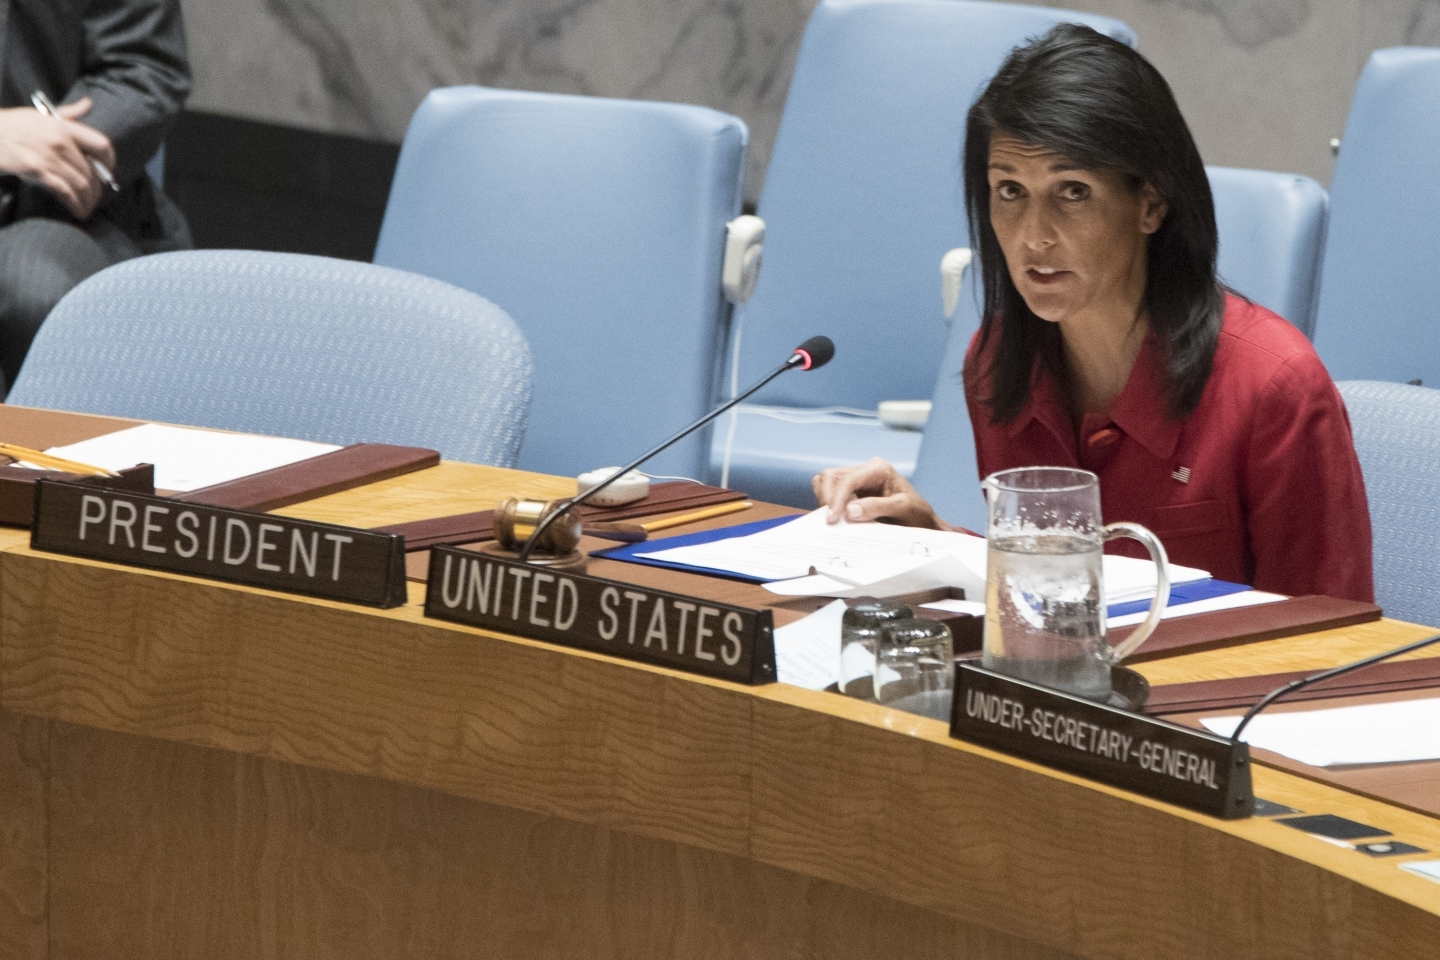 US Ambassador to the United Nations Nikki Haley speaks during a Security Council meeting on Syria (AP Photo/Mary Altaffer)